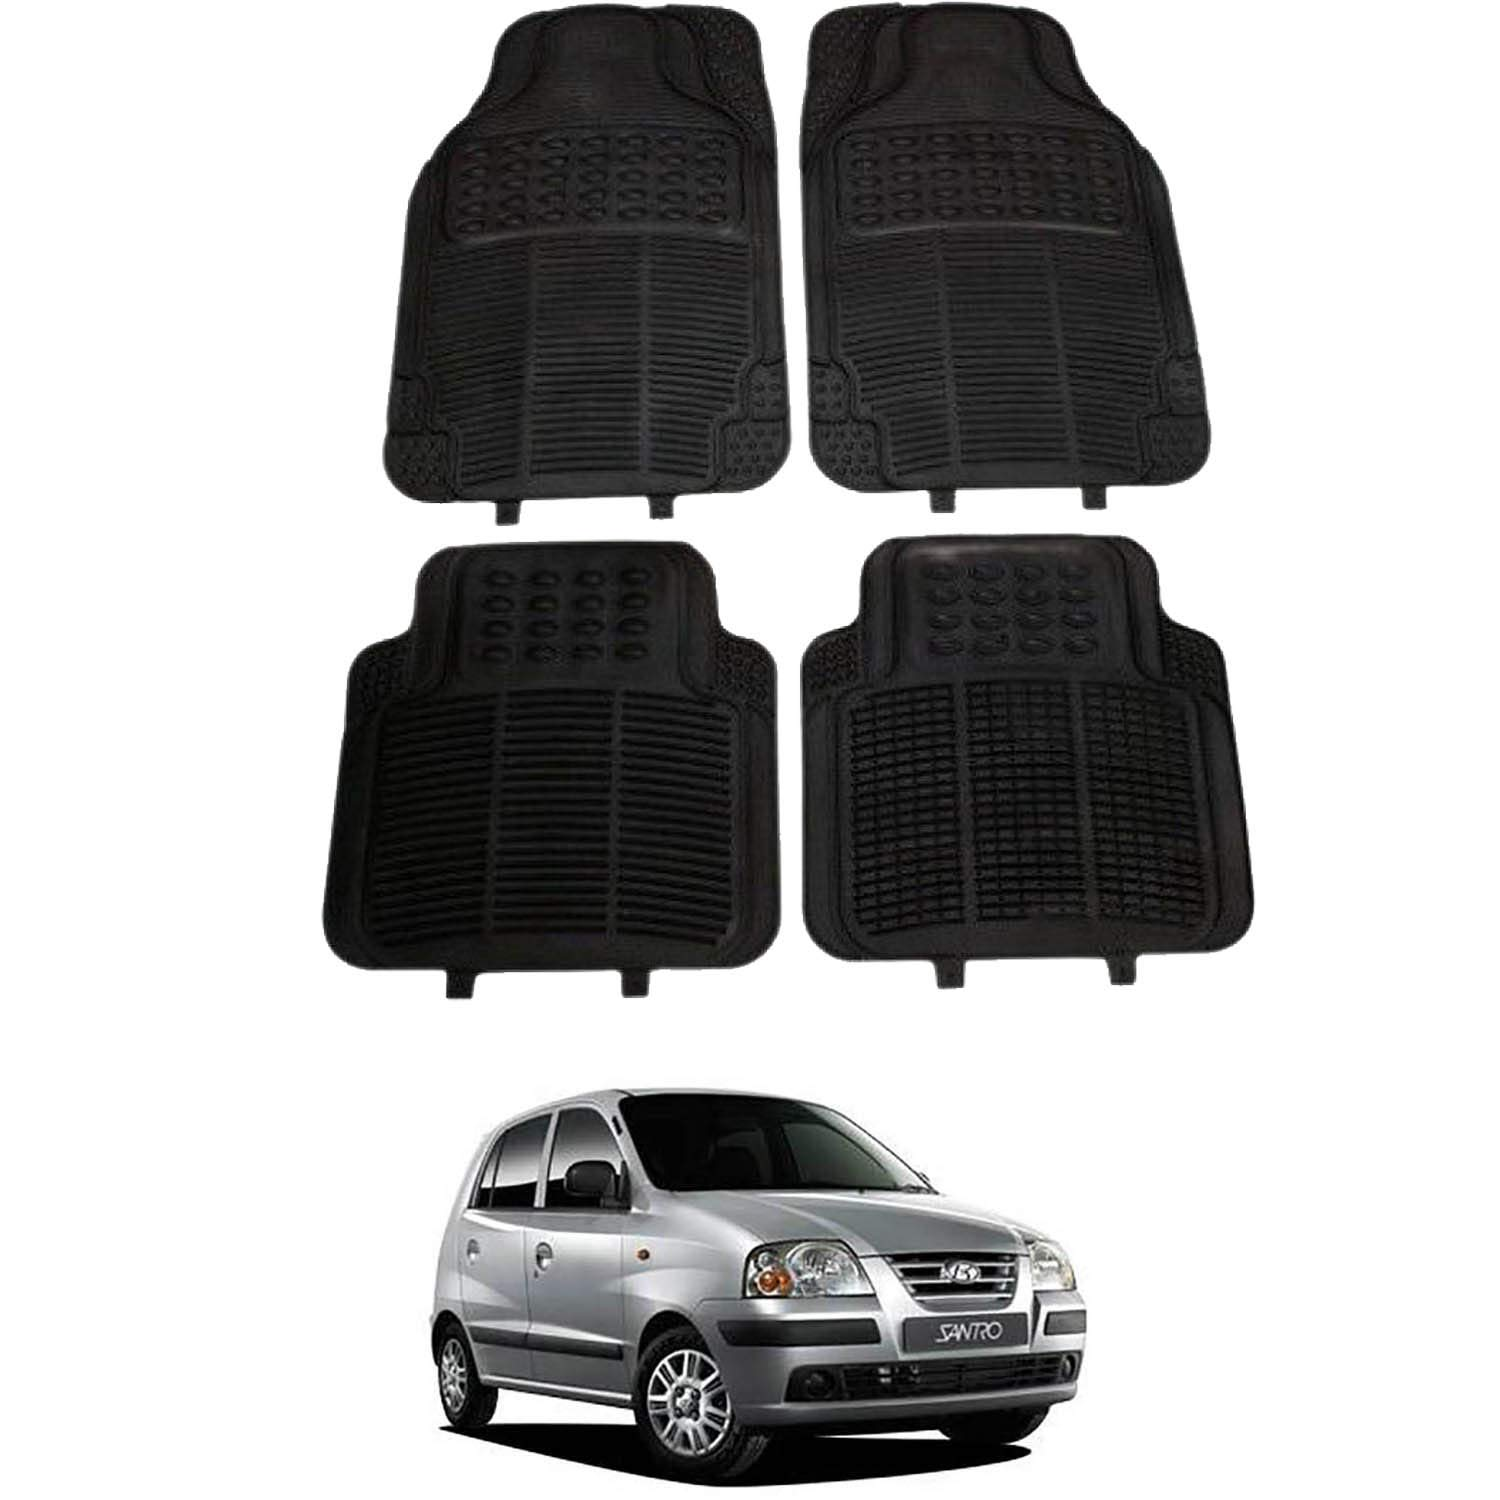 RONISH Black Rubber car Floor Foot mat for Santro